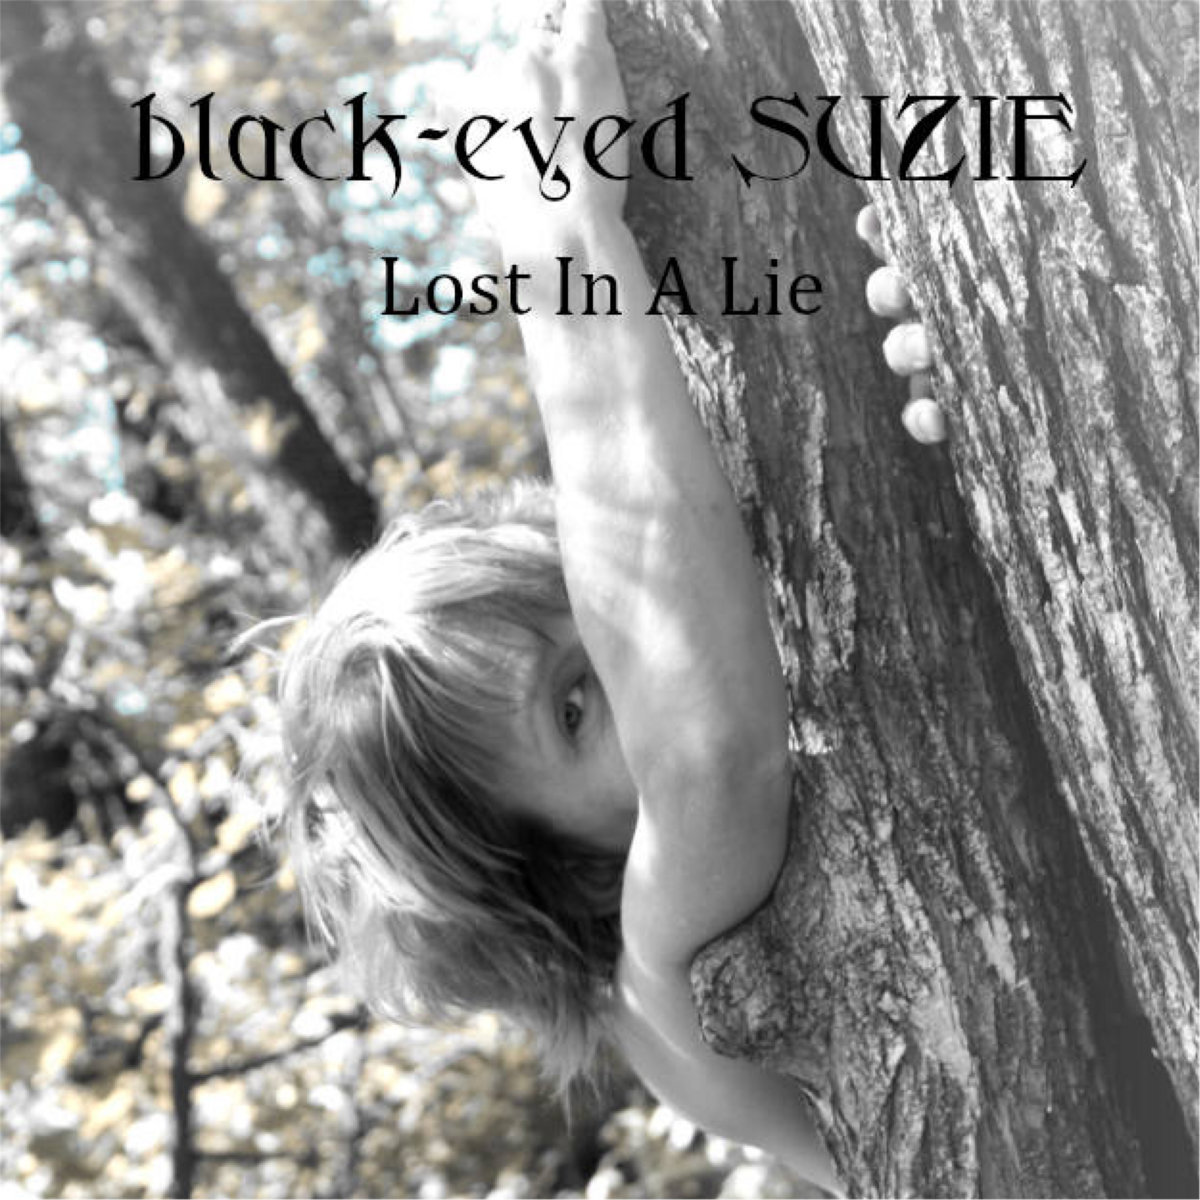 Lost In A Lie by black-eyed SUZIE